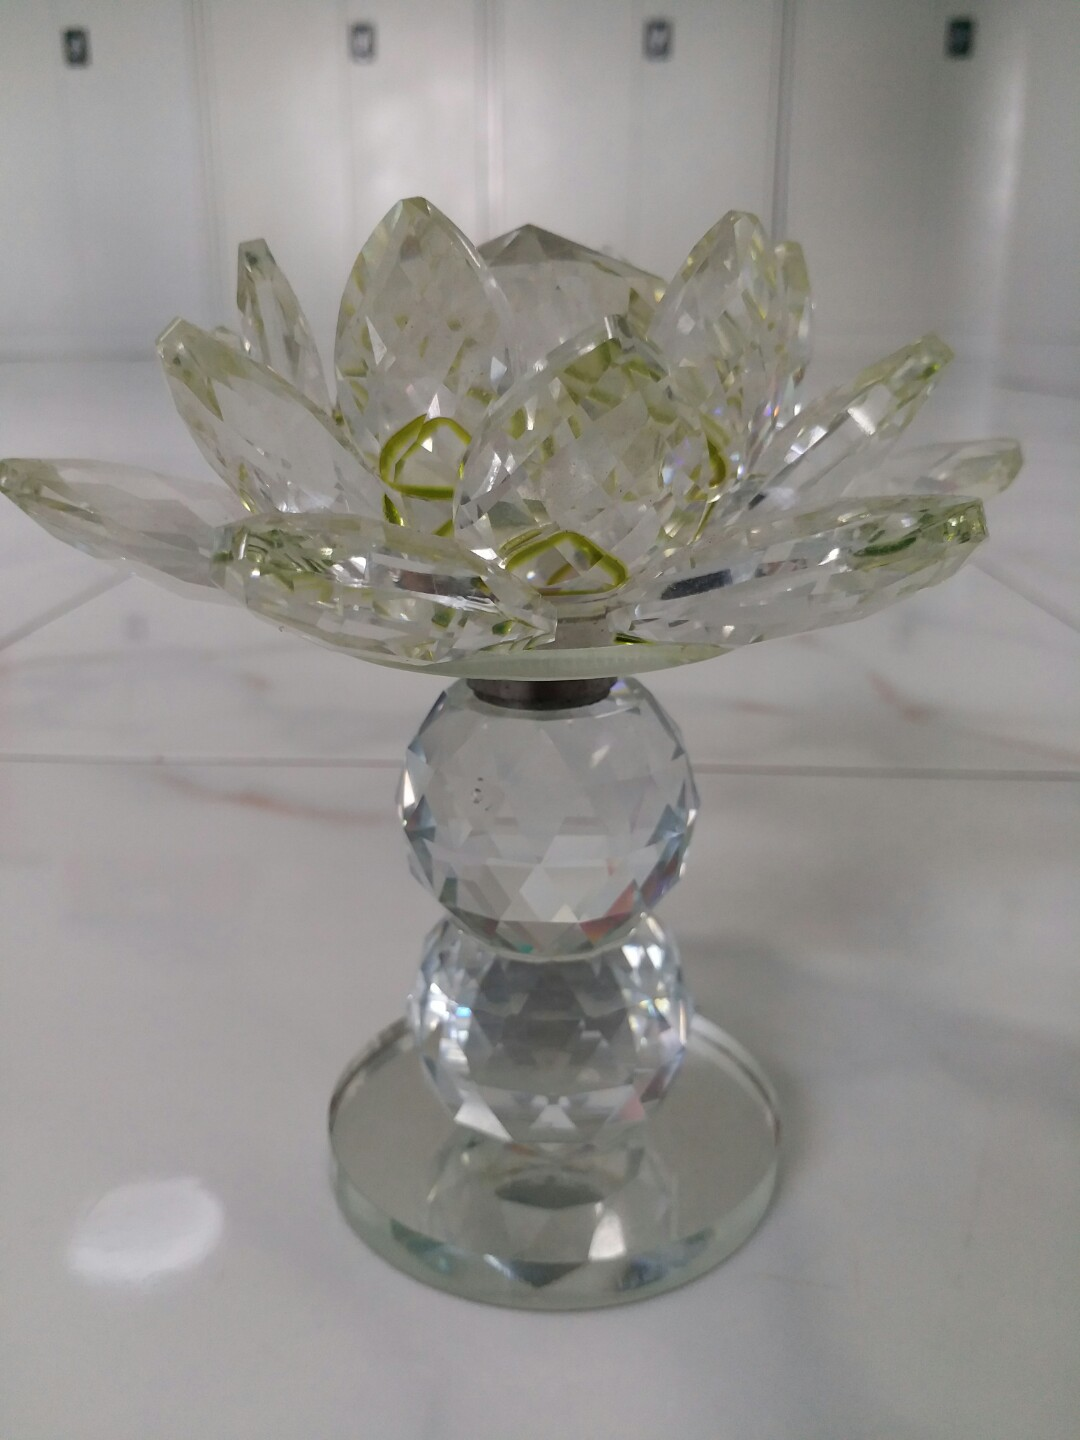 Glass Crystal Lotus Flower W Revolving Stand Furniture Home Decor